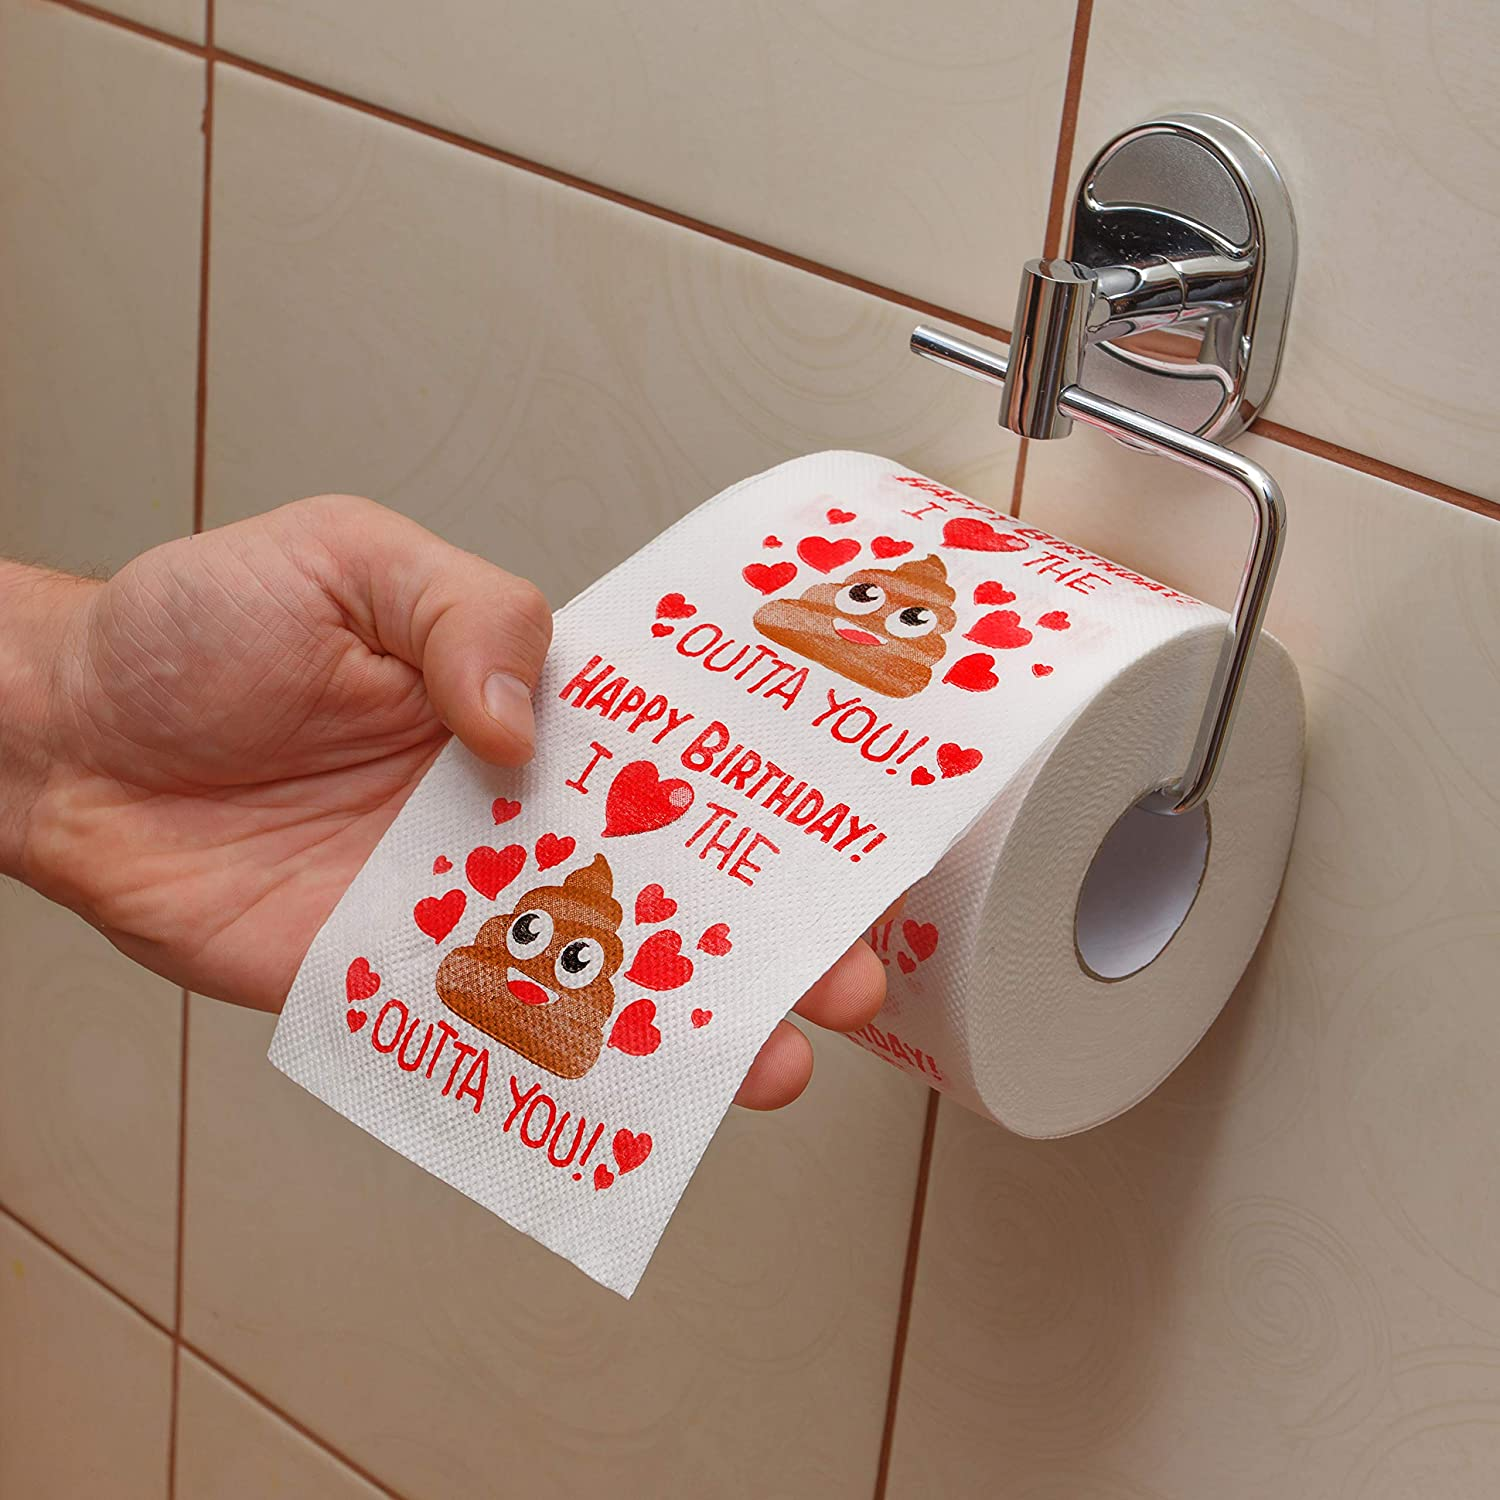 The Perfect Decoration for Your Party Excellent Gift for Wife Husband Boyfriend Girlfriend Friend Sister Brother Dad Mom Husband Birthday Gifts by Aliza Large Funny Gag Toilet Paper Roll